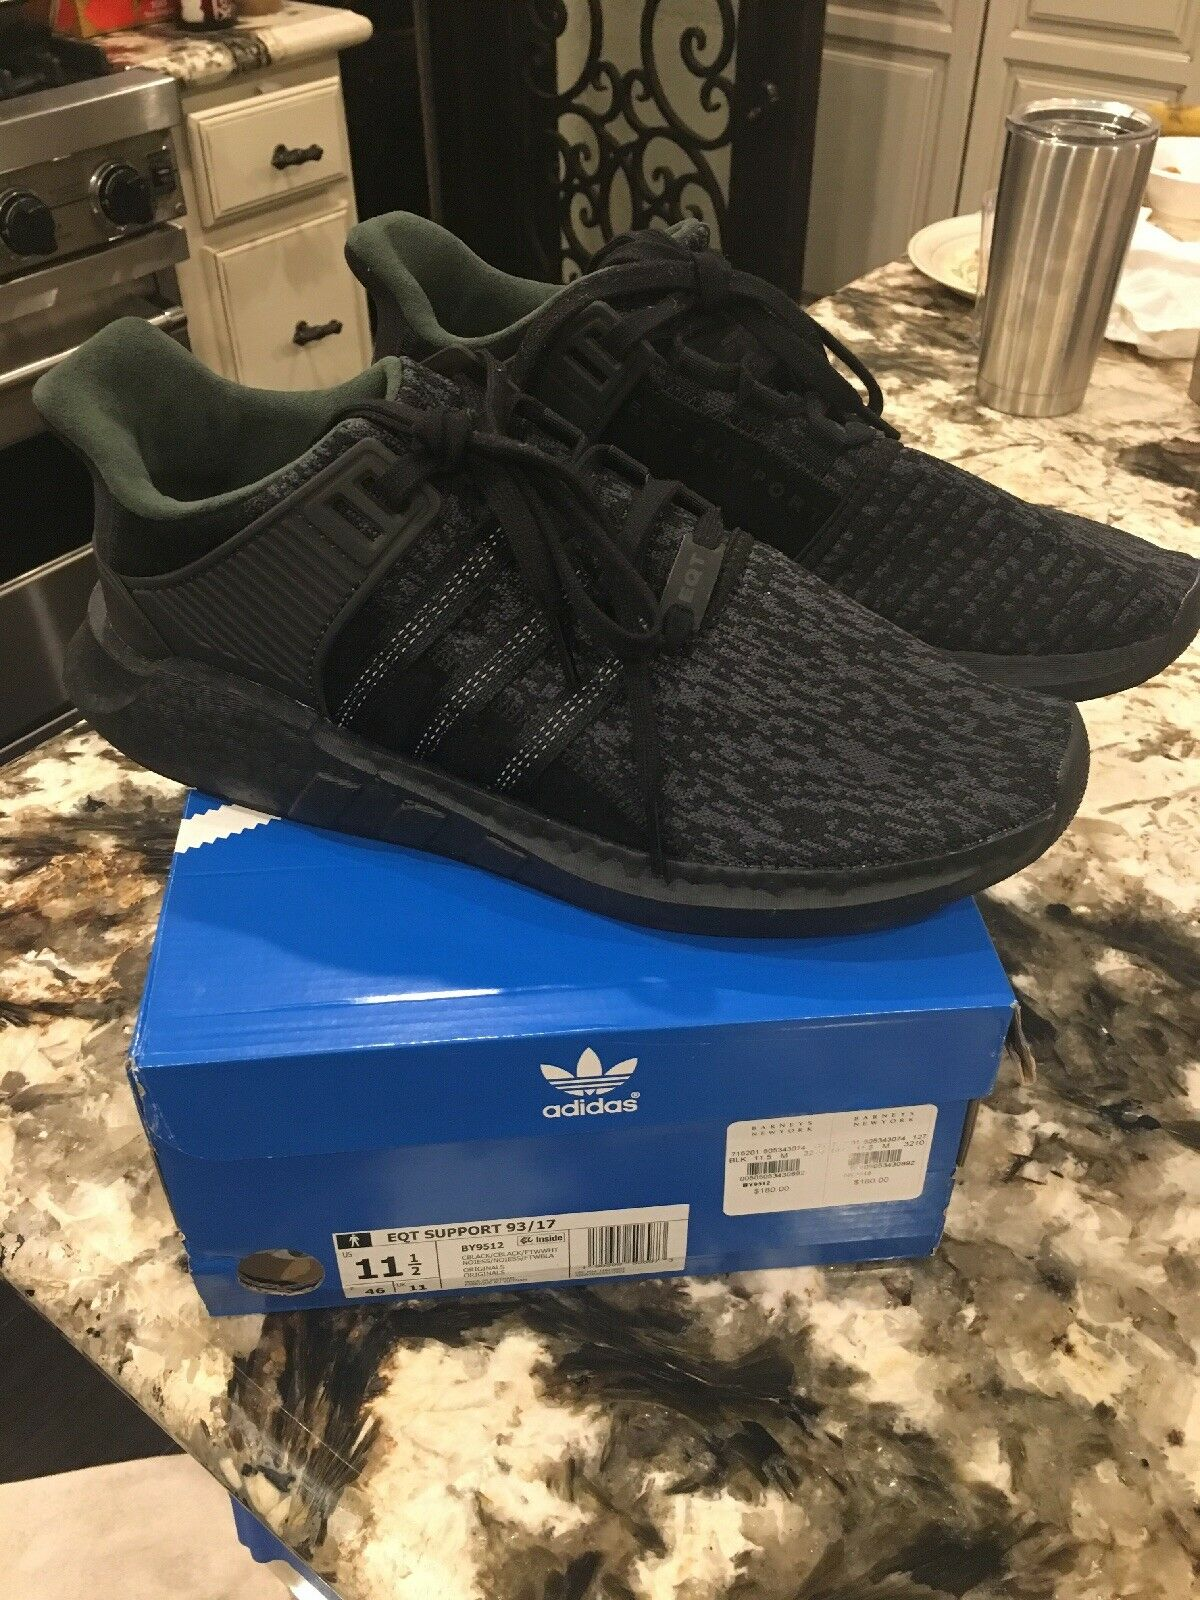 ADIDAS ORIGINAL EQT SUPPORT BOOST PIXELATED KNIT 93 17 BY9512 BLACK GREY WHITE